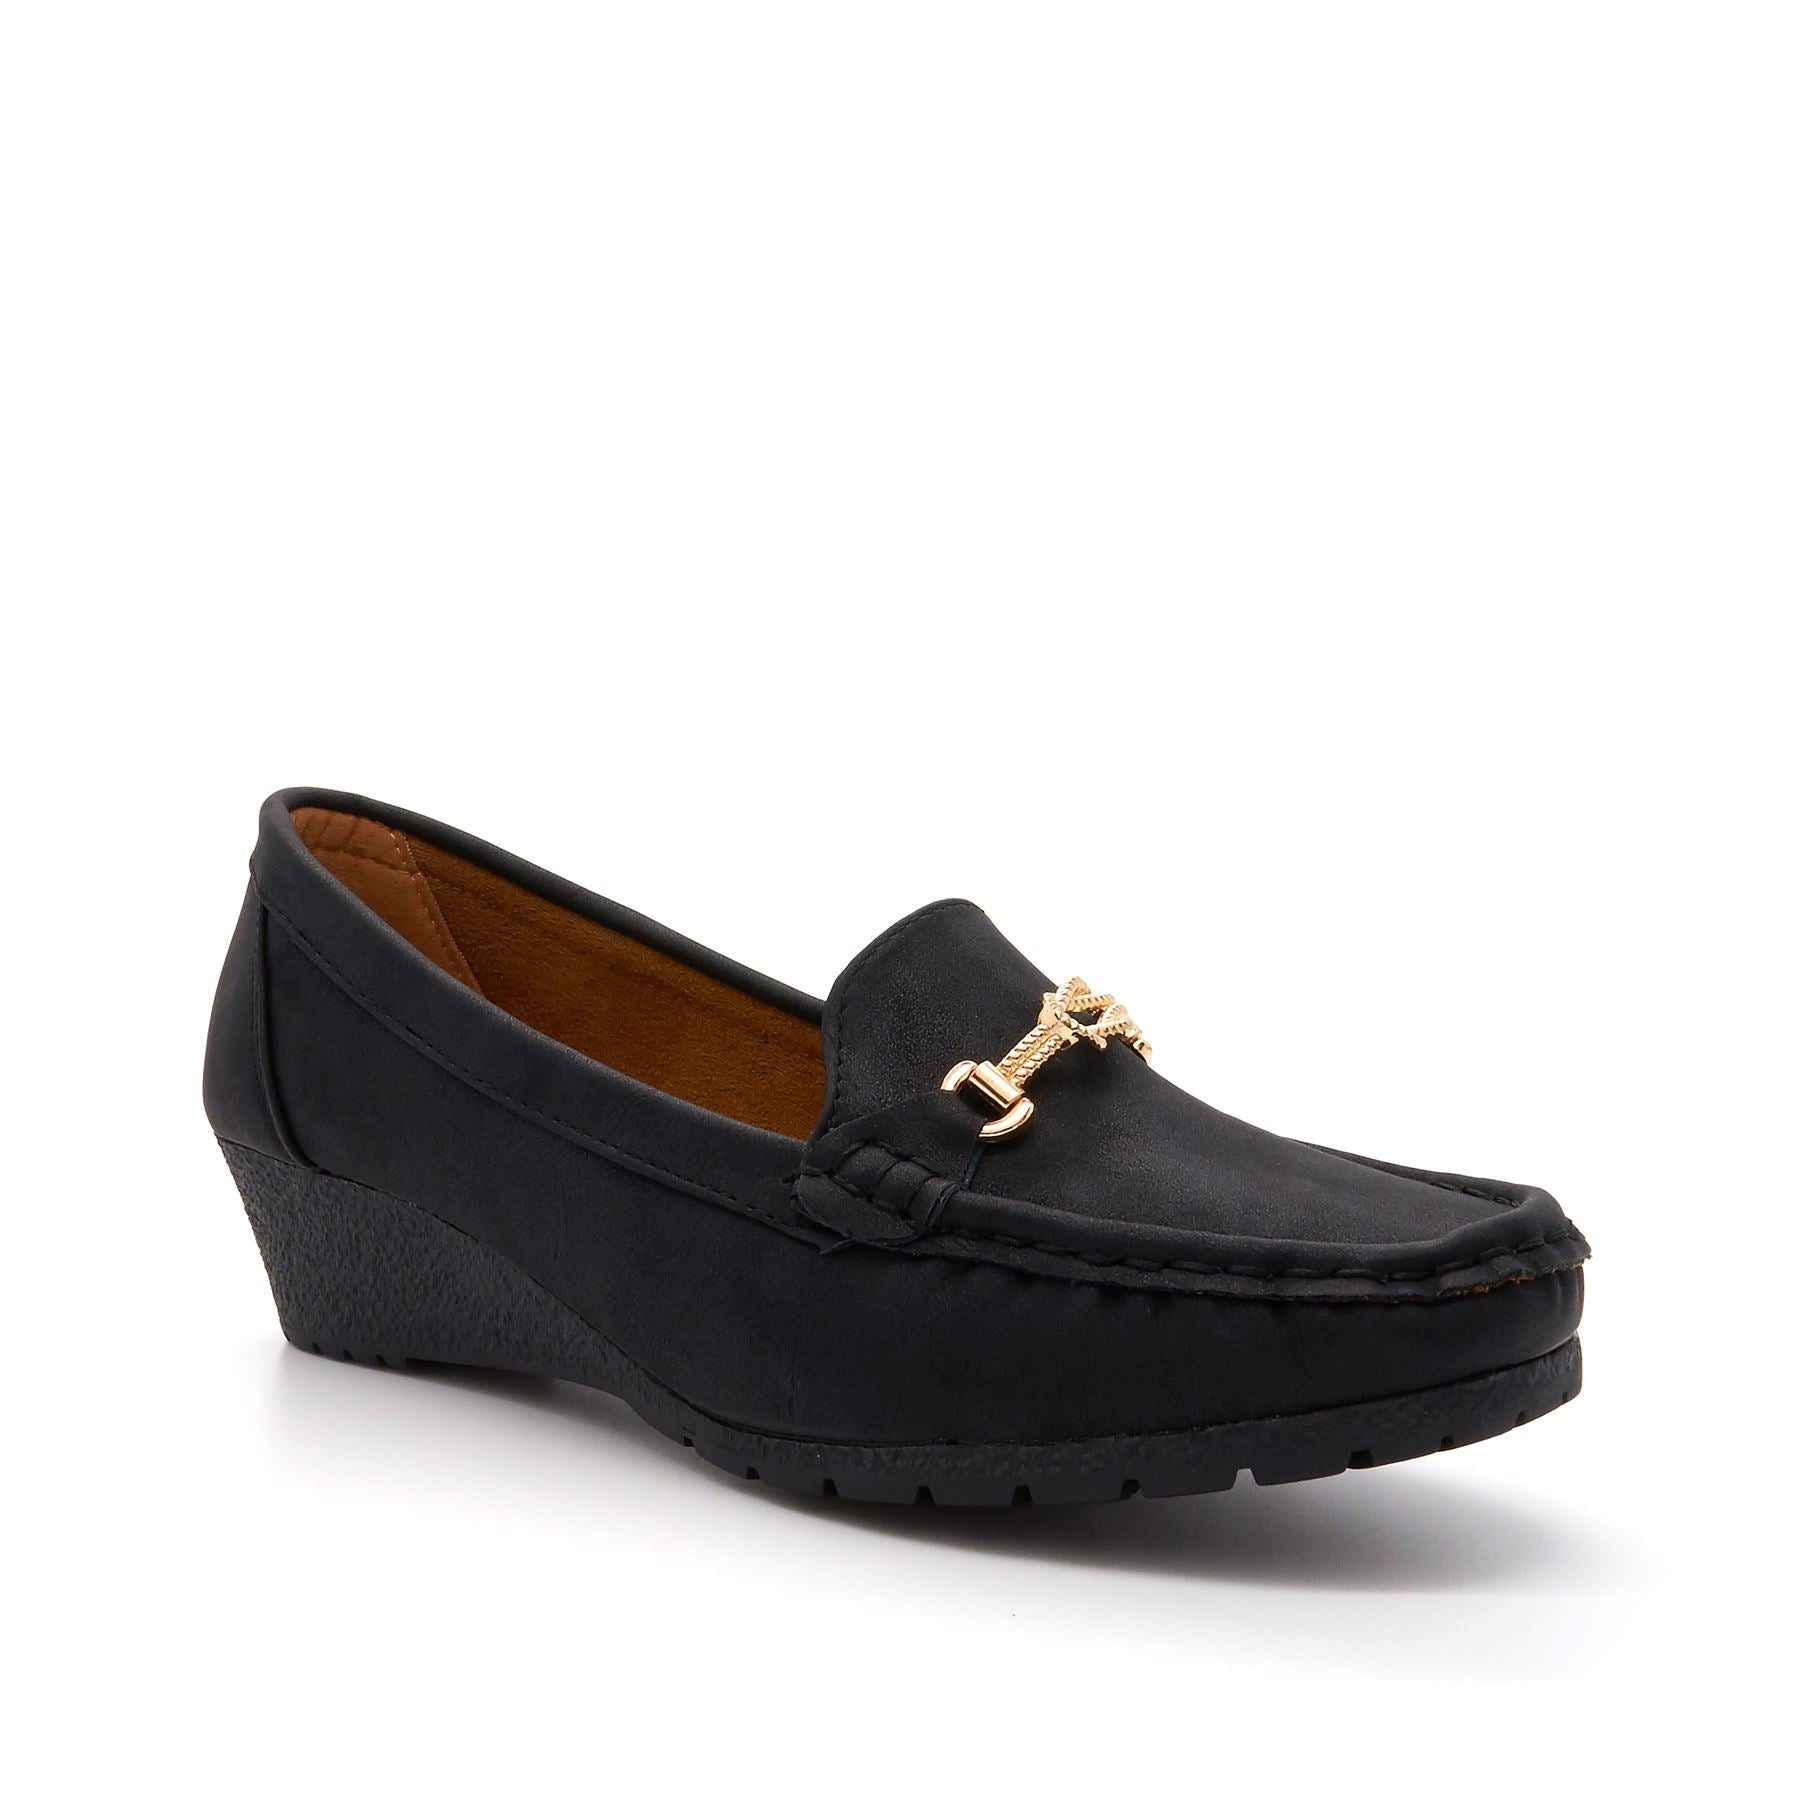 Black Buckle Detail Wedge Loafers